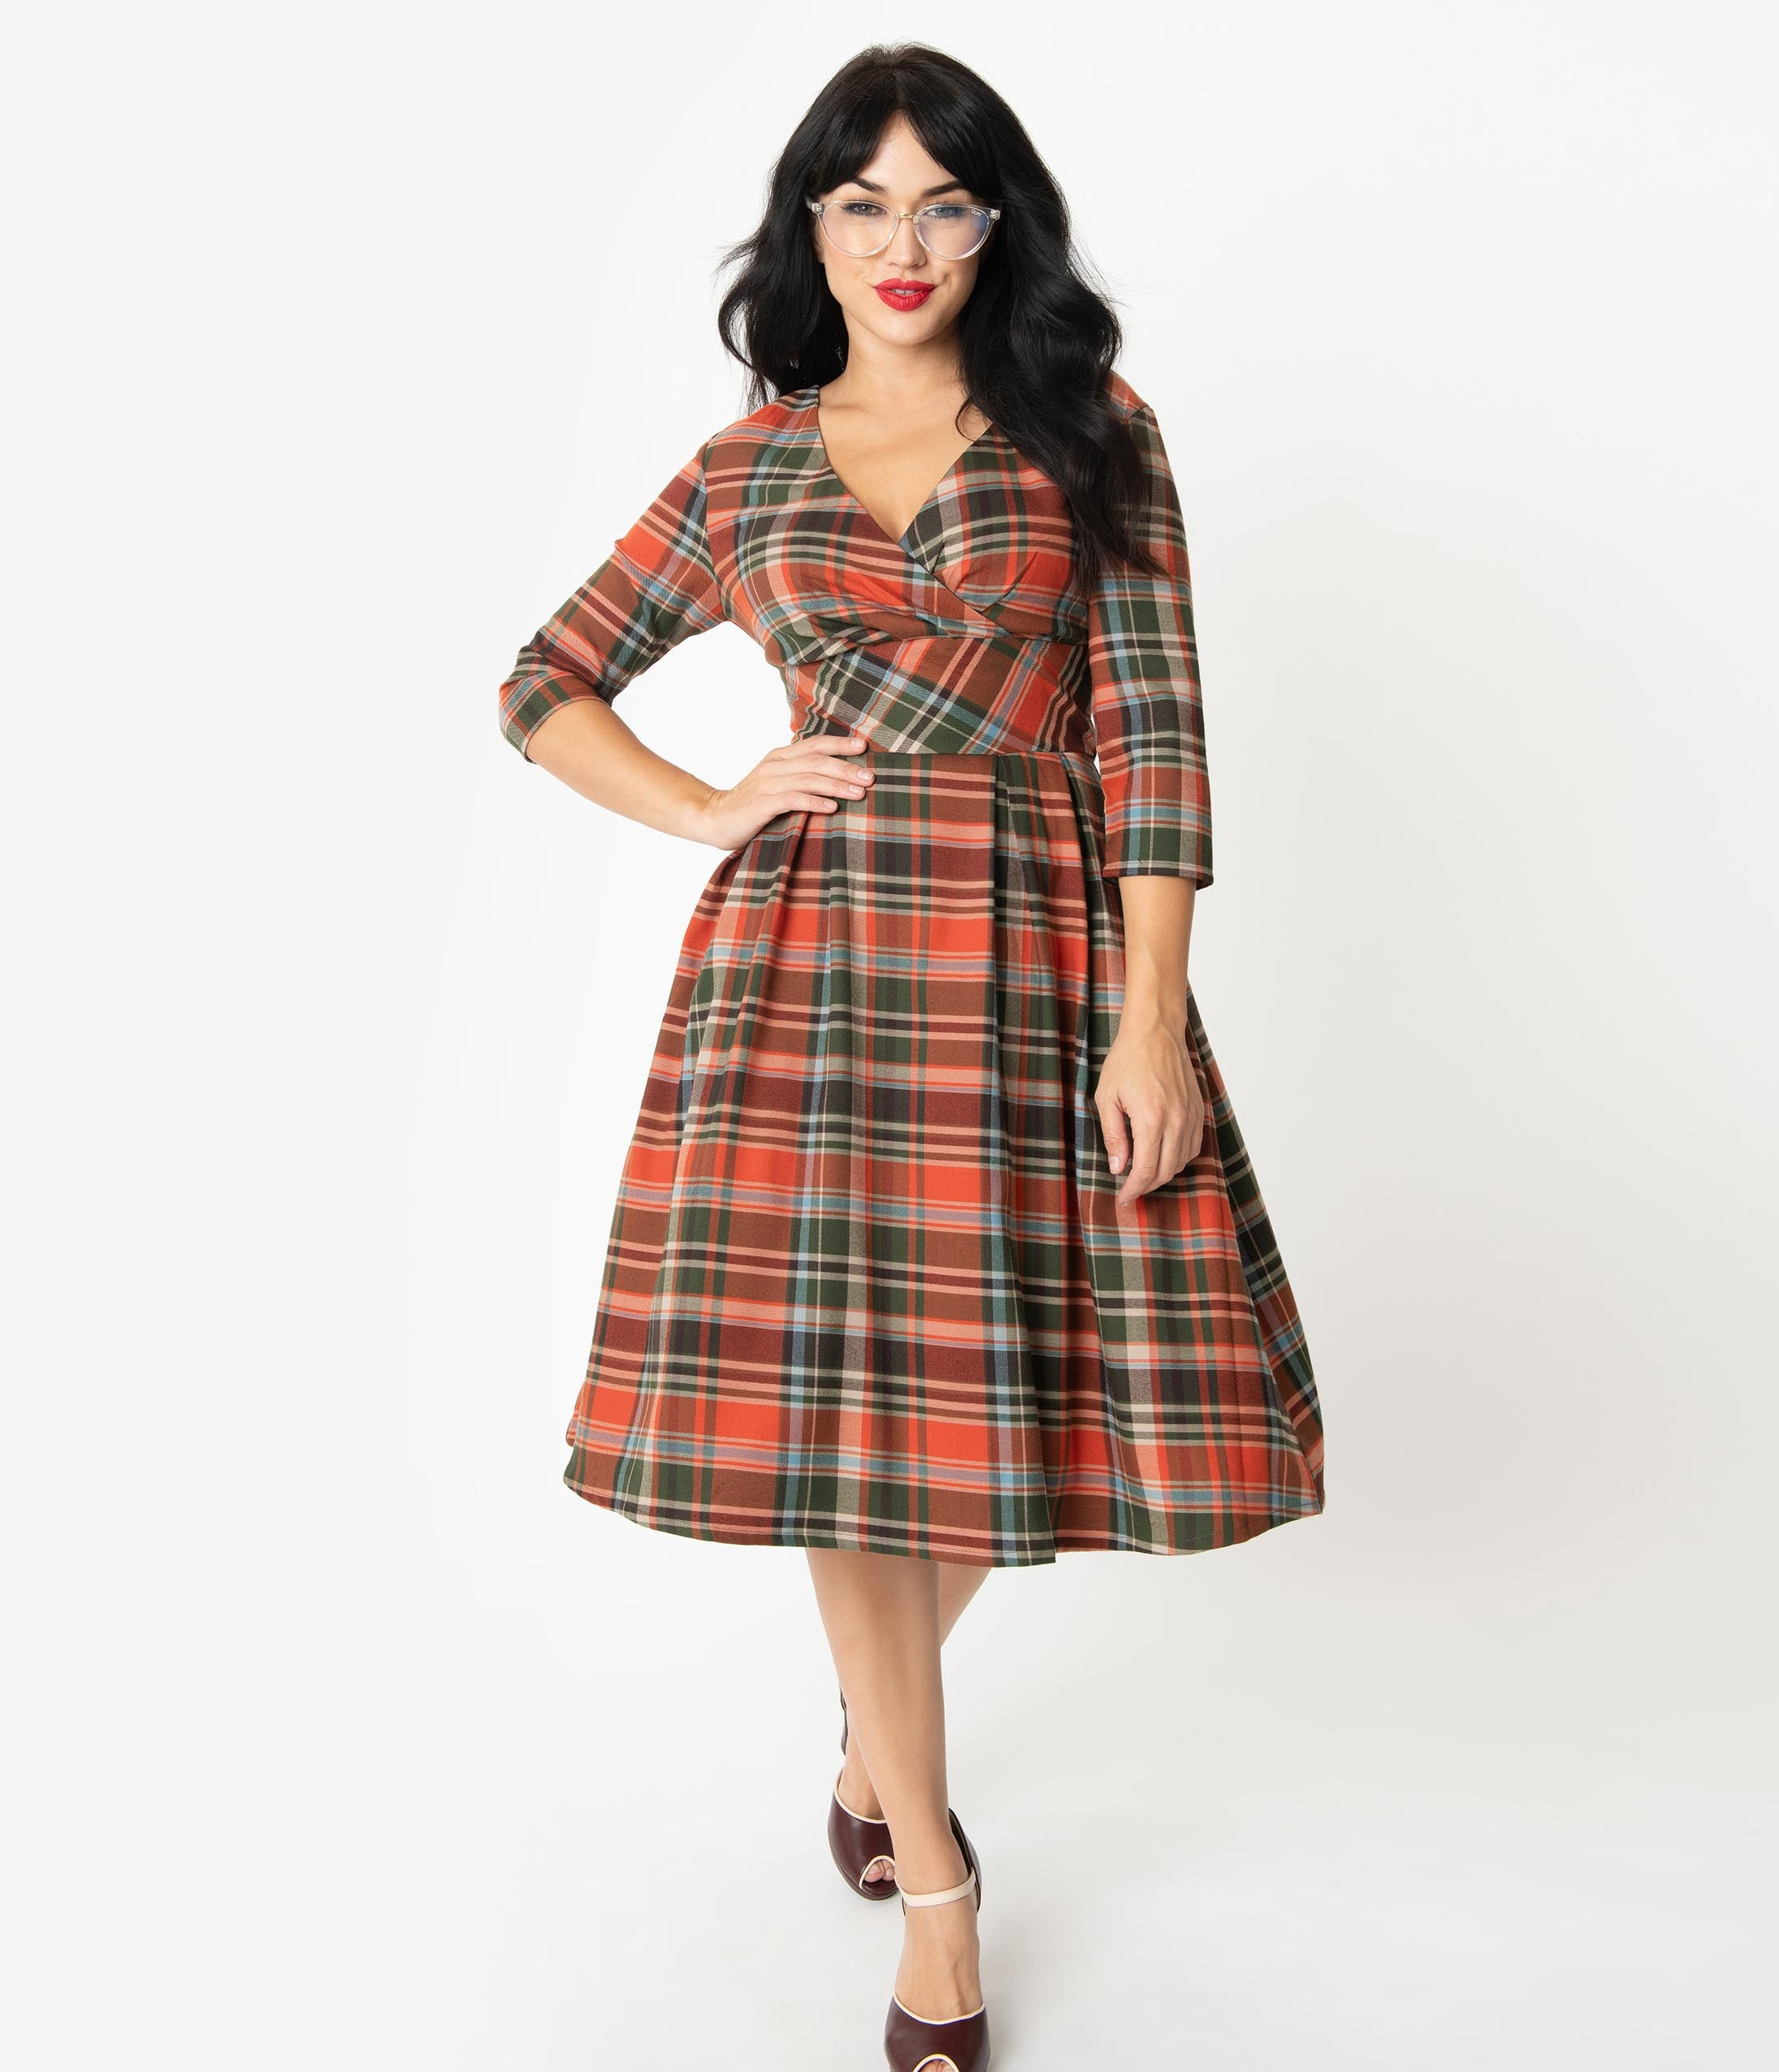 Swing Dance Dresses | Lindy Hop Dresses & Clothing Hell Bunny 1950S Style Orange  Green Plaid Oktober Swing Dress $102.00 AT vintagedancer.com